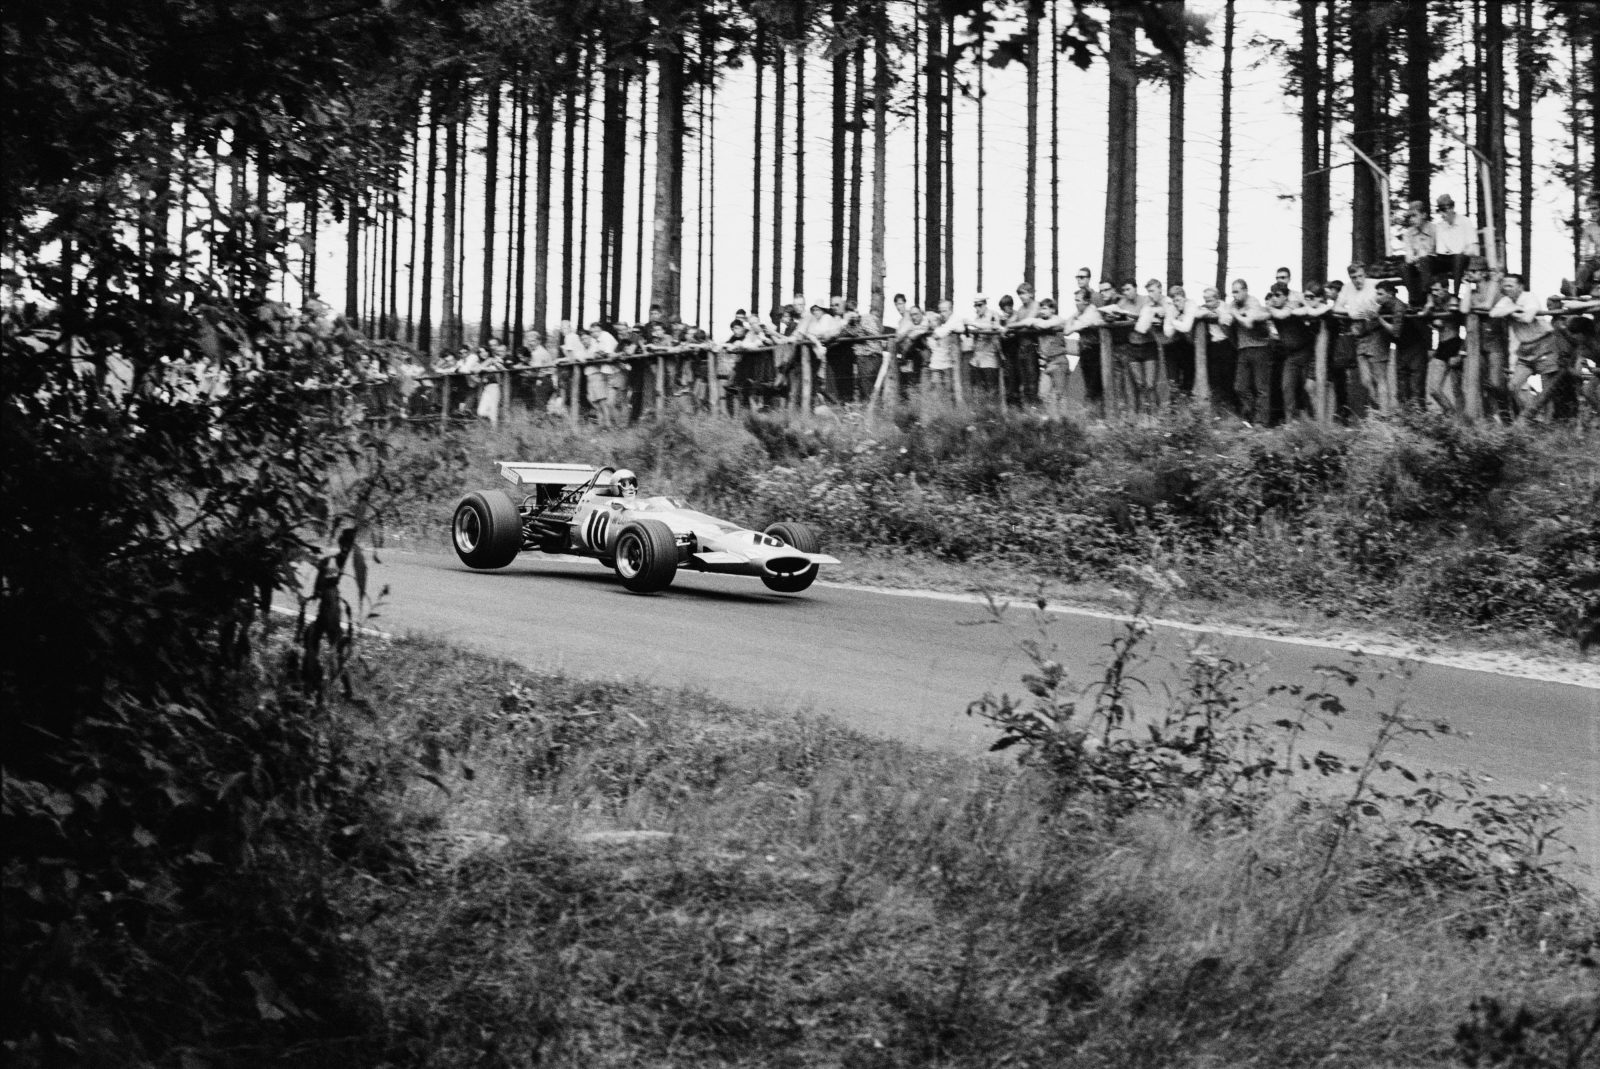 During the 1958 German Grand Prix, the field was opened to Formula Two as well as Formula One cars. Twenty-year-old Bruce McLaren, racing for Cooper-Climax, was the first Formula Two car across the line at the Nürburgring, and was subsequently promoted to Formula One racing. Within a decade, he was driving his own cars at the Nürburgring—such as the M7C, pictured, which he raced in 1969 to take third place.